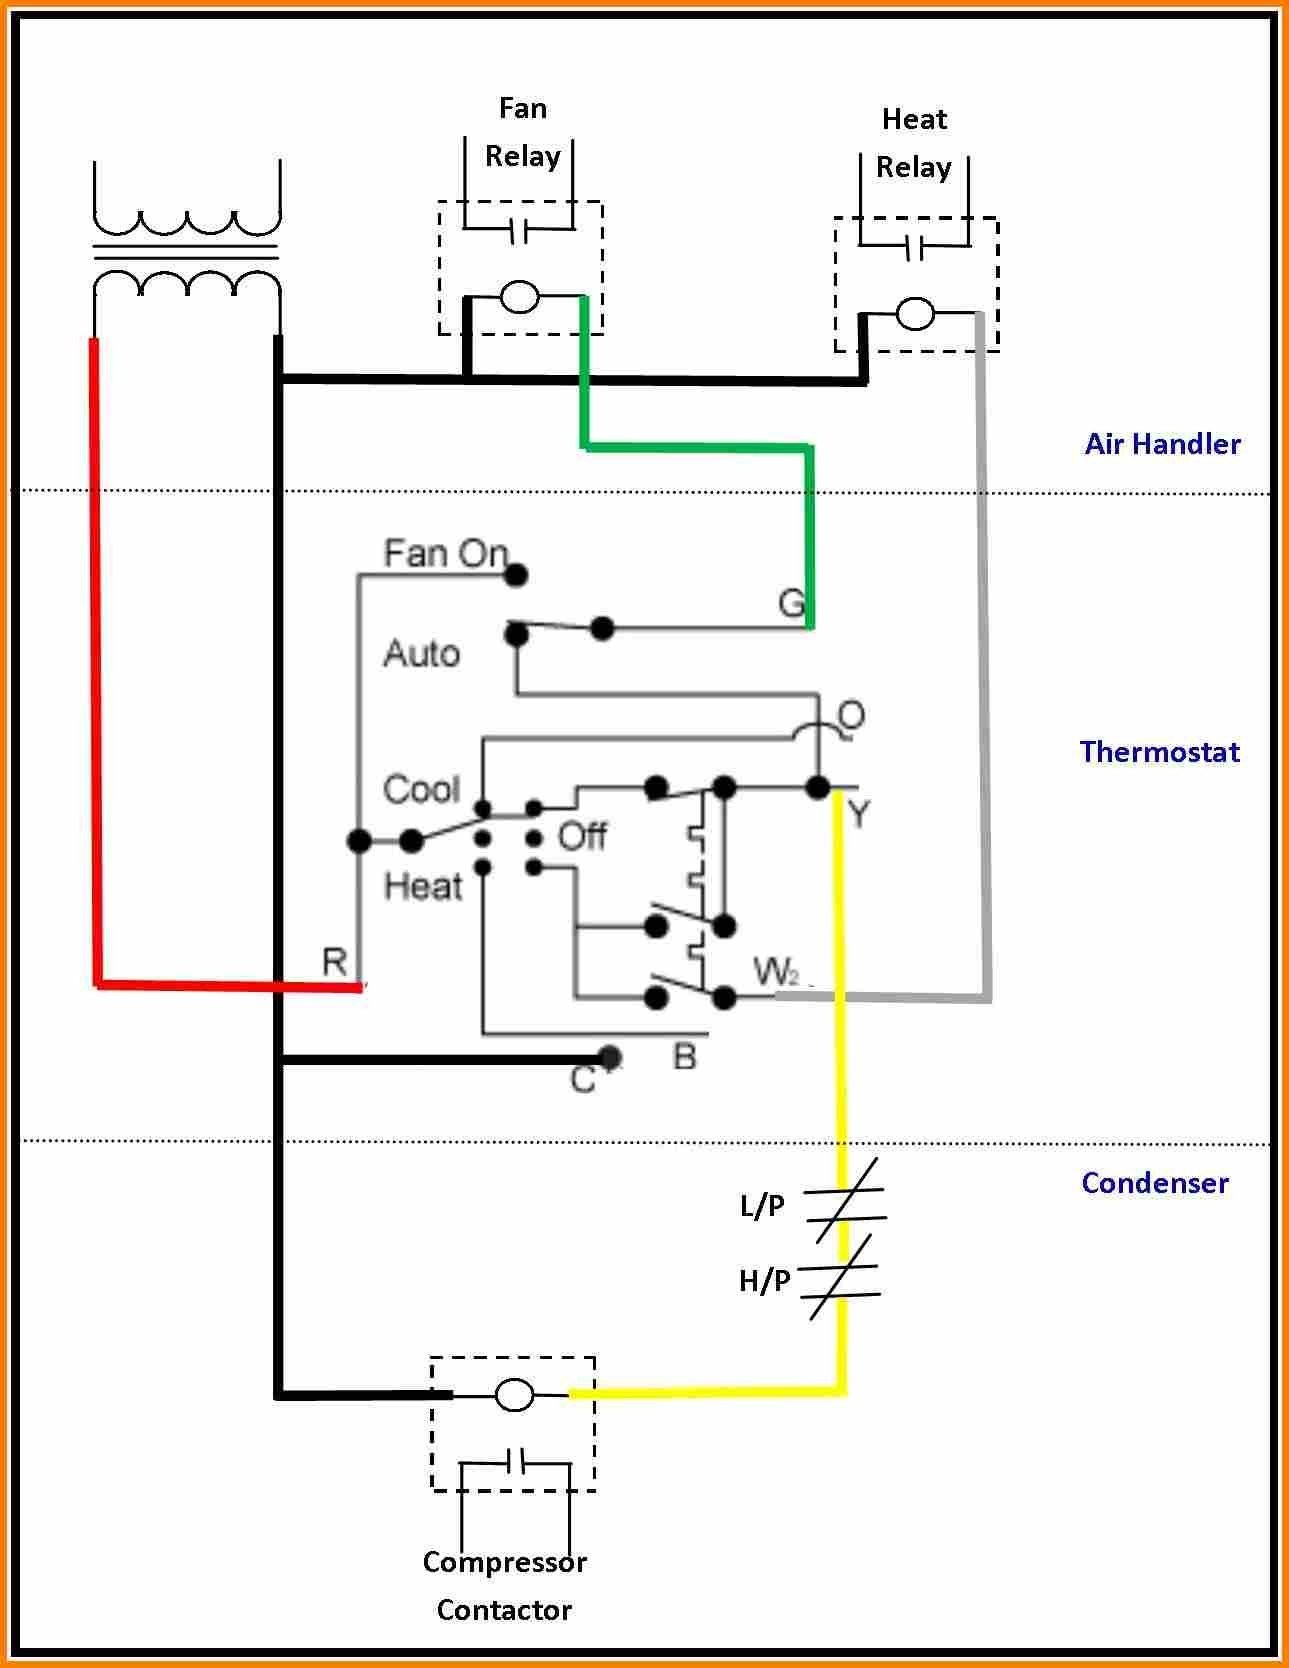 Oil Furnace Wiring Diagram Gas Furnace Wiring Diagram Beautiful Wiring Diagram Hvac thermostat Of Oil Furnace Wiring Diagram